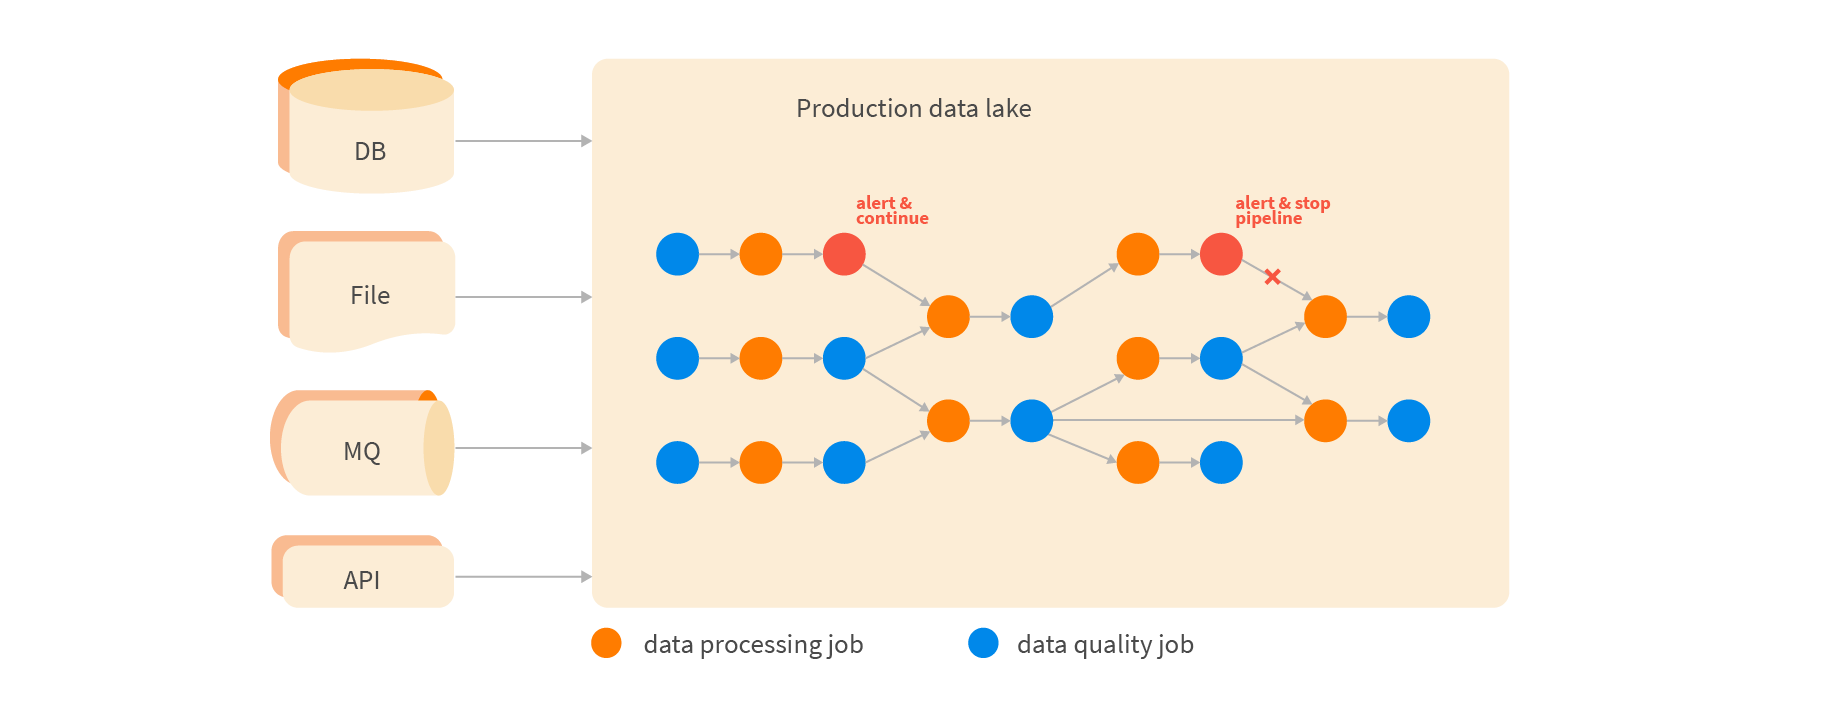 Data quality jobs get inserted